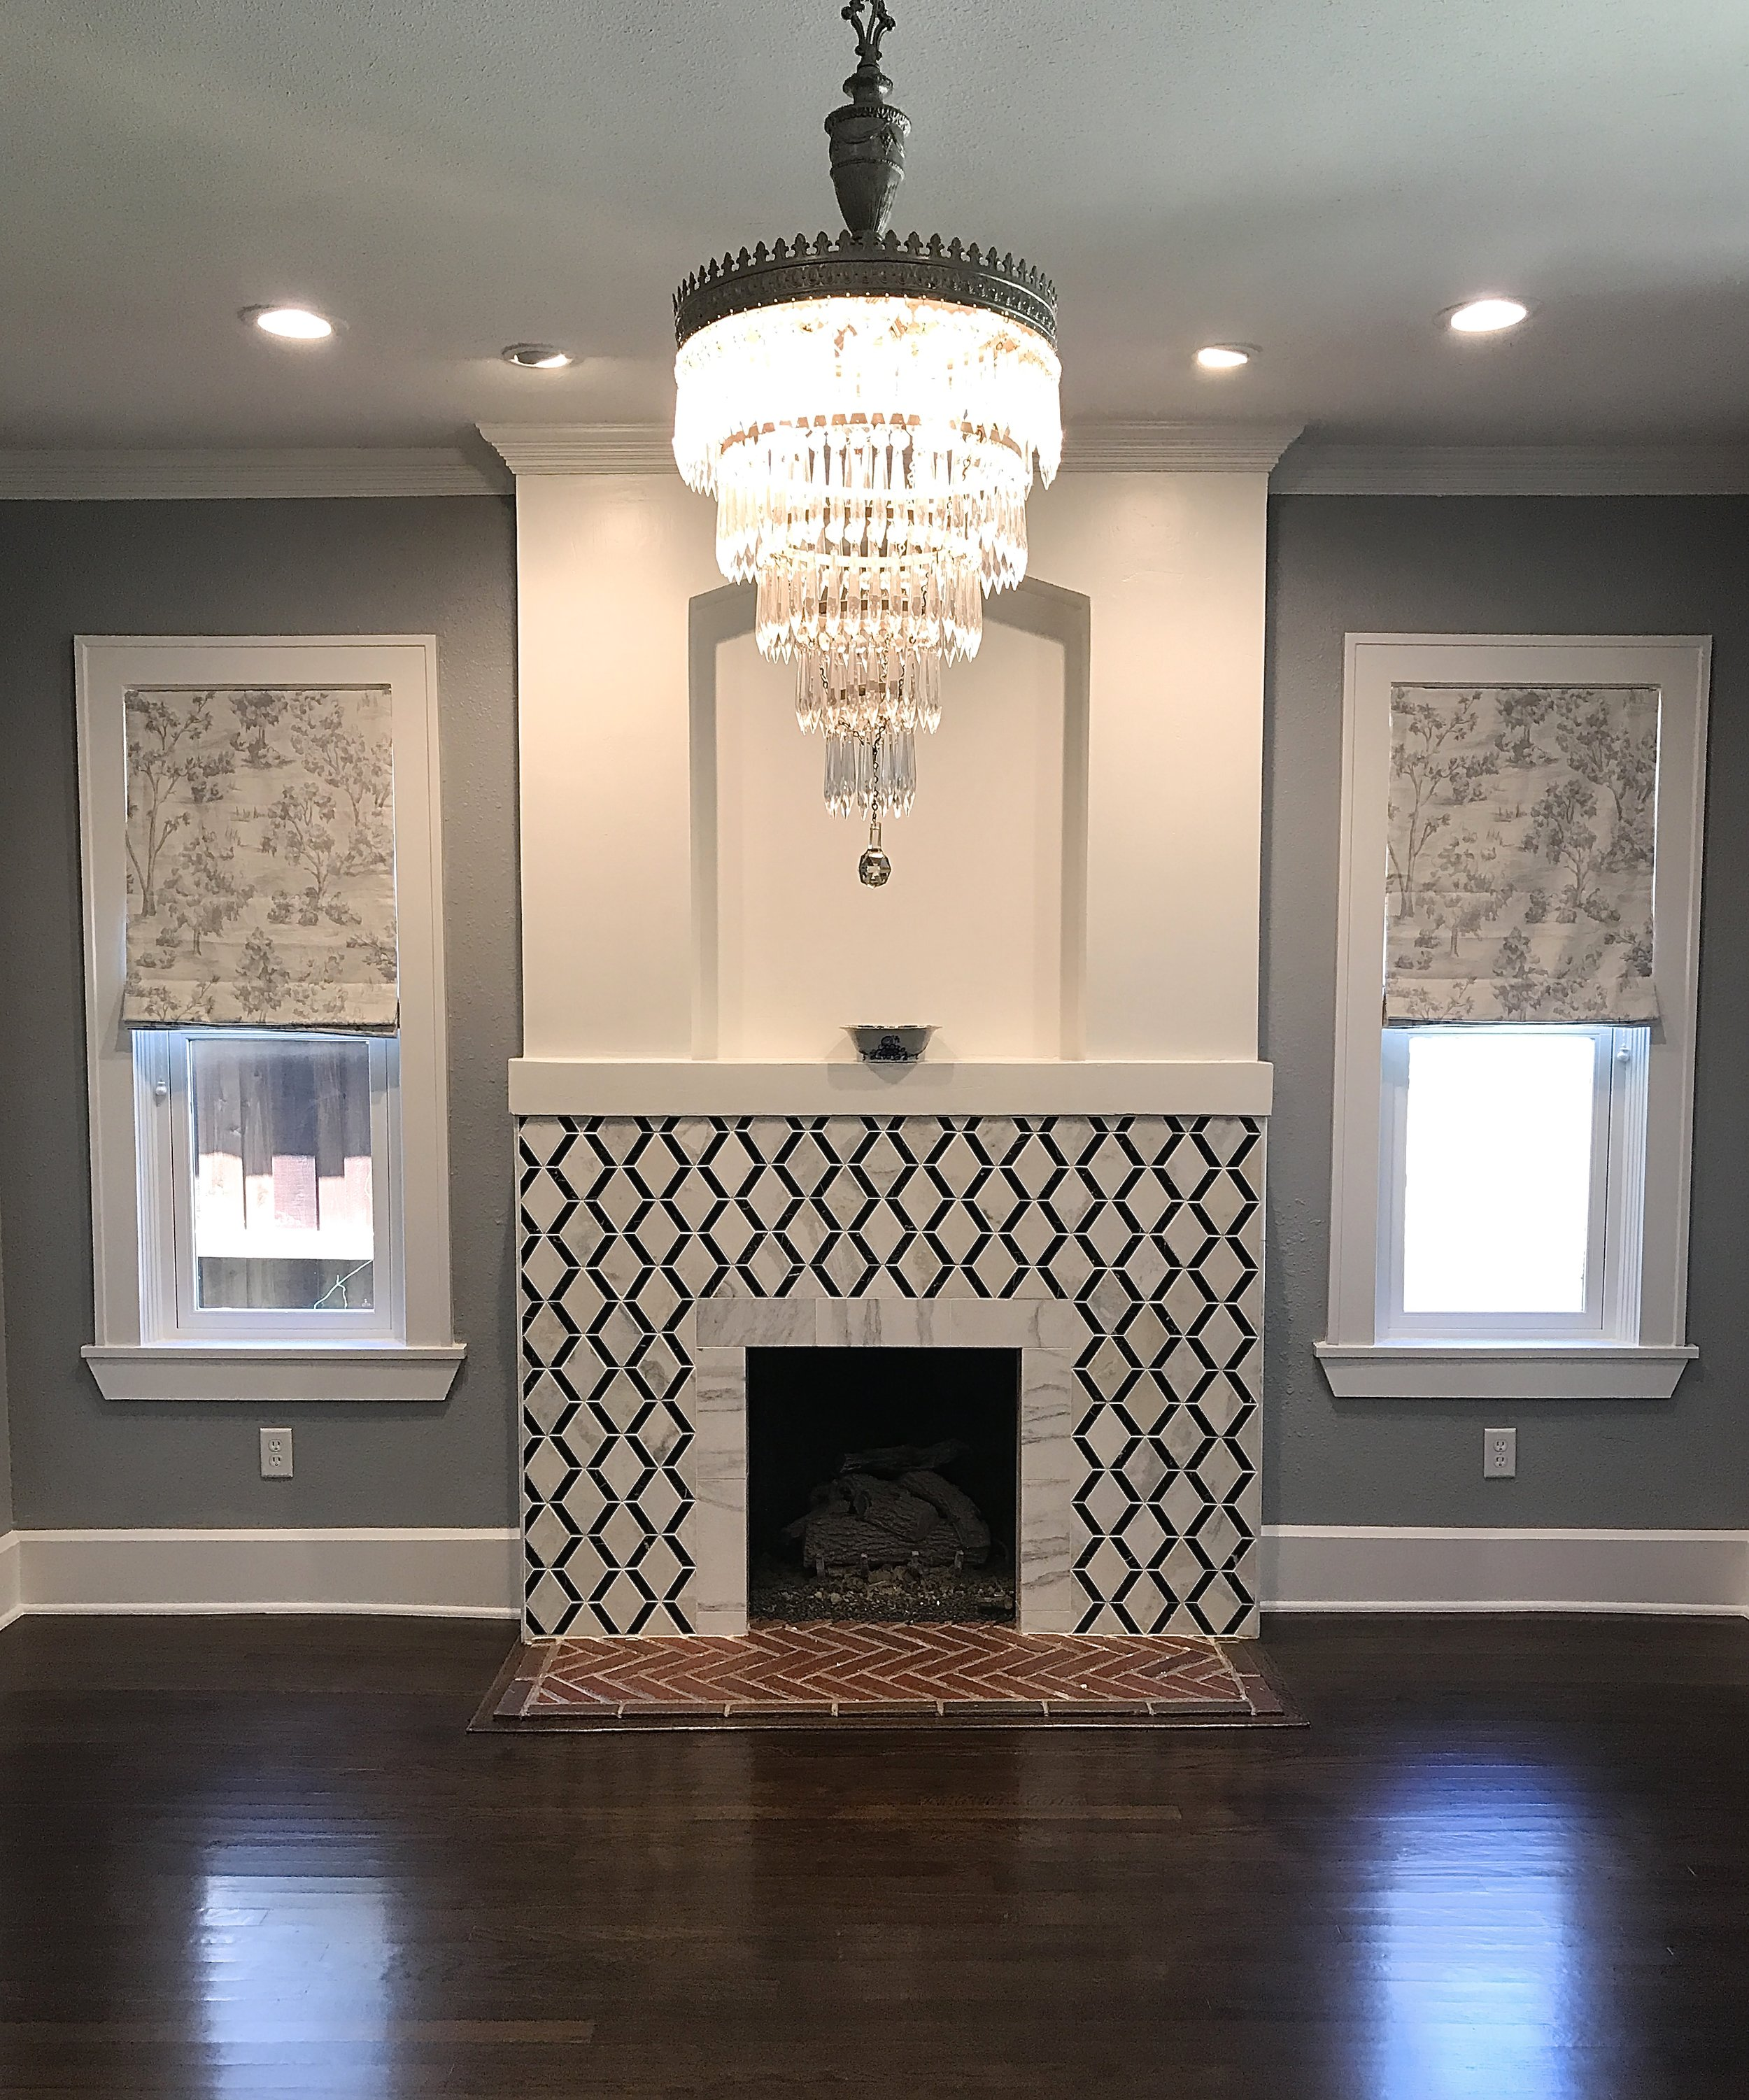 Geometric black and white wall tile surrounding the hearth